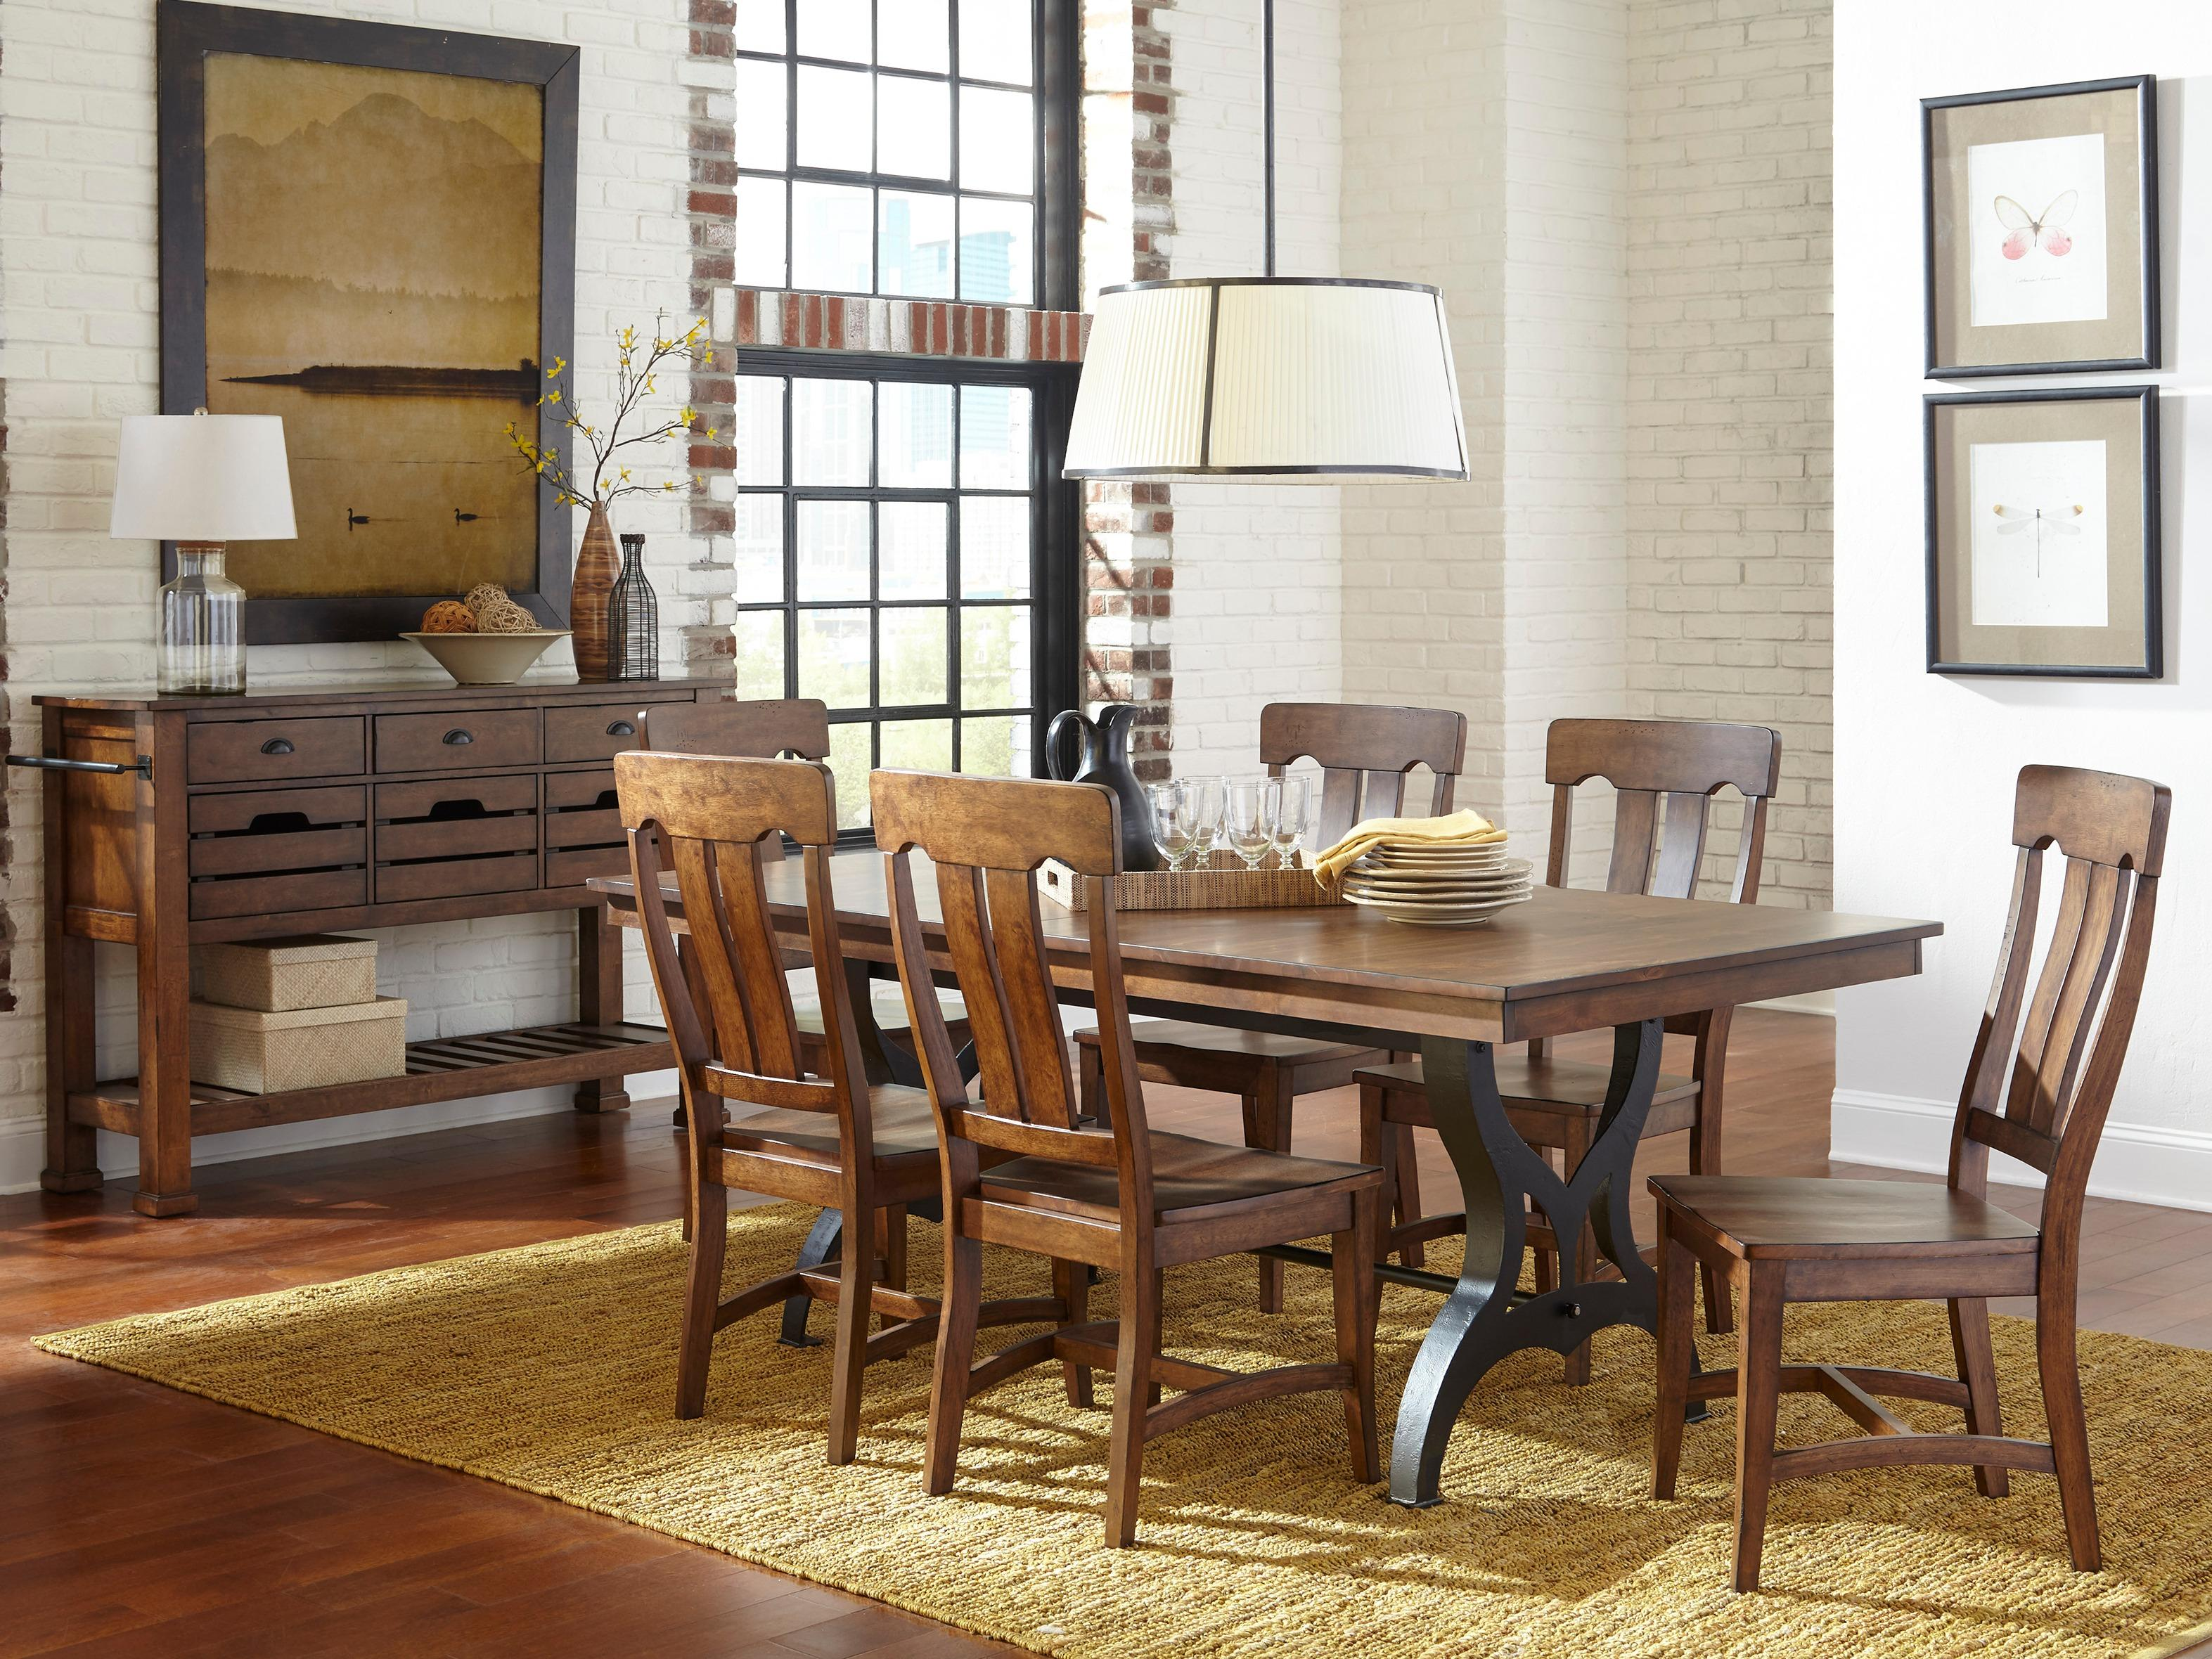 Creative Dinettes & Bar Stools Furniture Store image 6